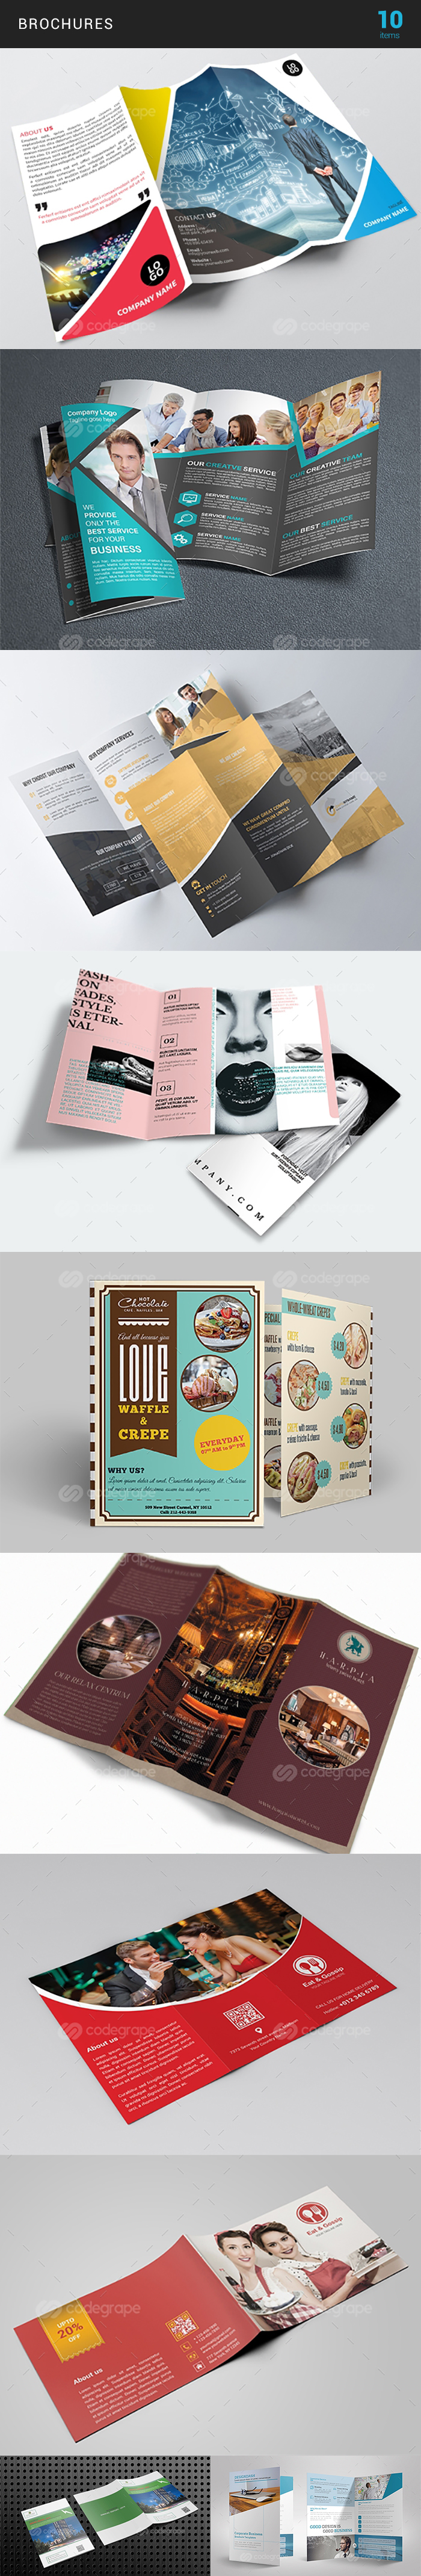 Elegant Print Templates Bundle with 100 Items - Only $19 - brochure